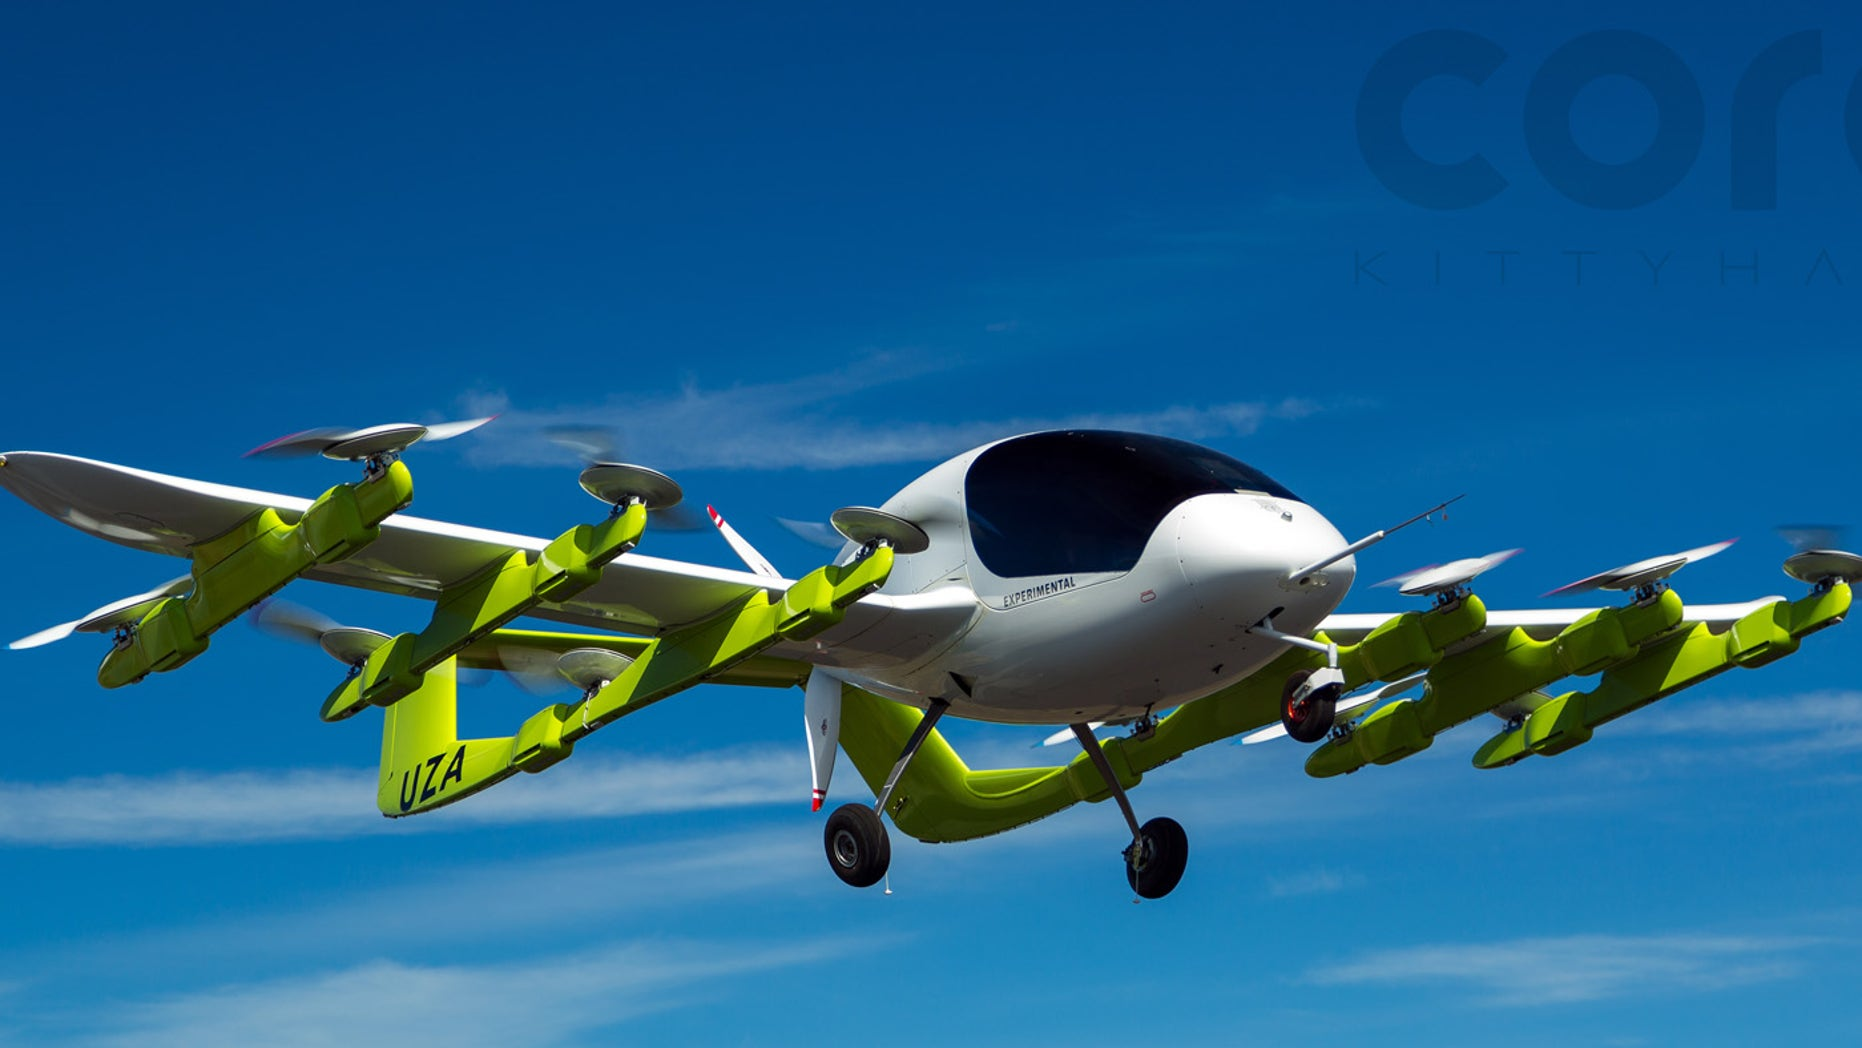 Kitty Hawk's flying taxi, known as Cora, can be seen in the image above.